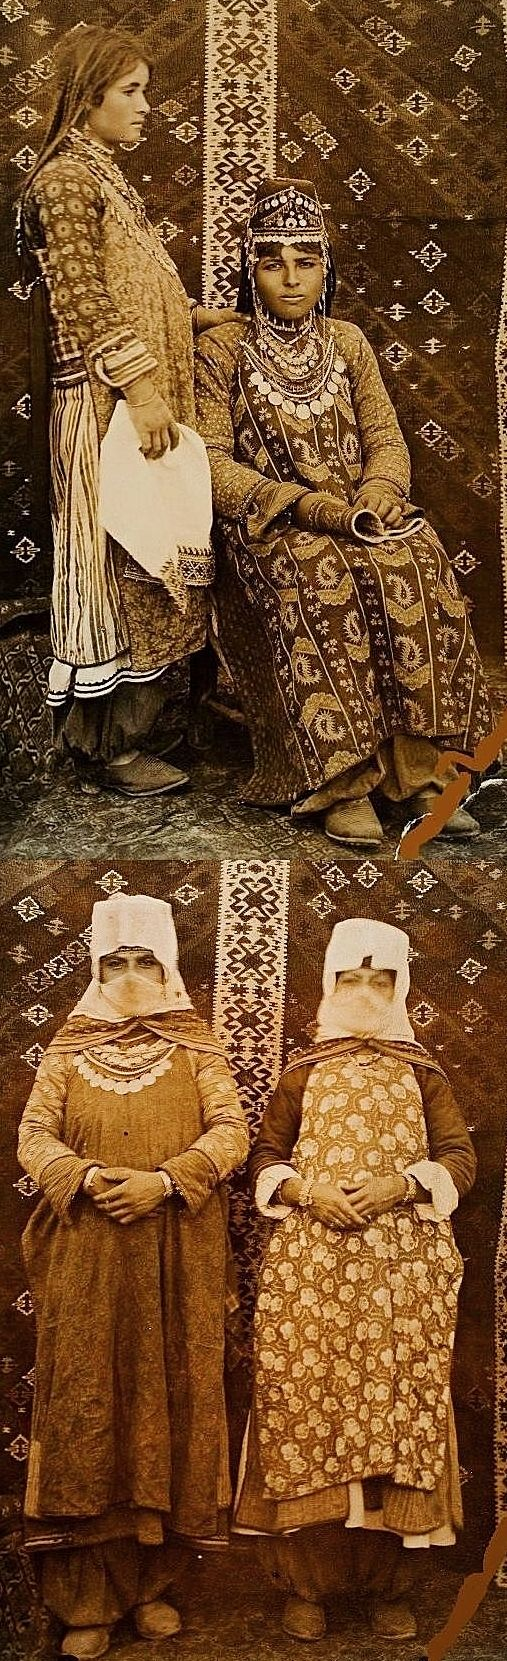 Armenian women from the village of Alur (currently Alaköy), in the Edremit district (in the western part of the Van province).   Late-Ottoman era, early 20th century.  Top: a newly wed bride and a relative.  Bottom: two women in outdoors village dress.